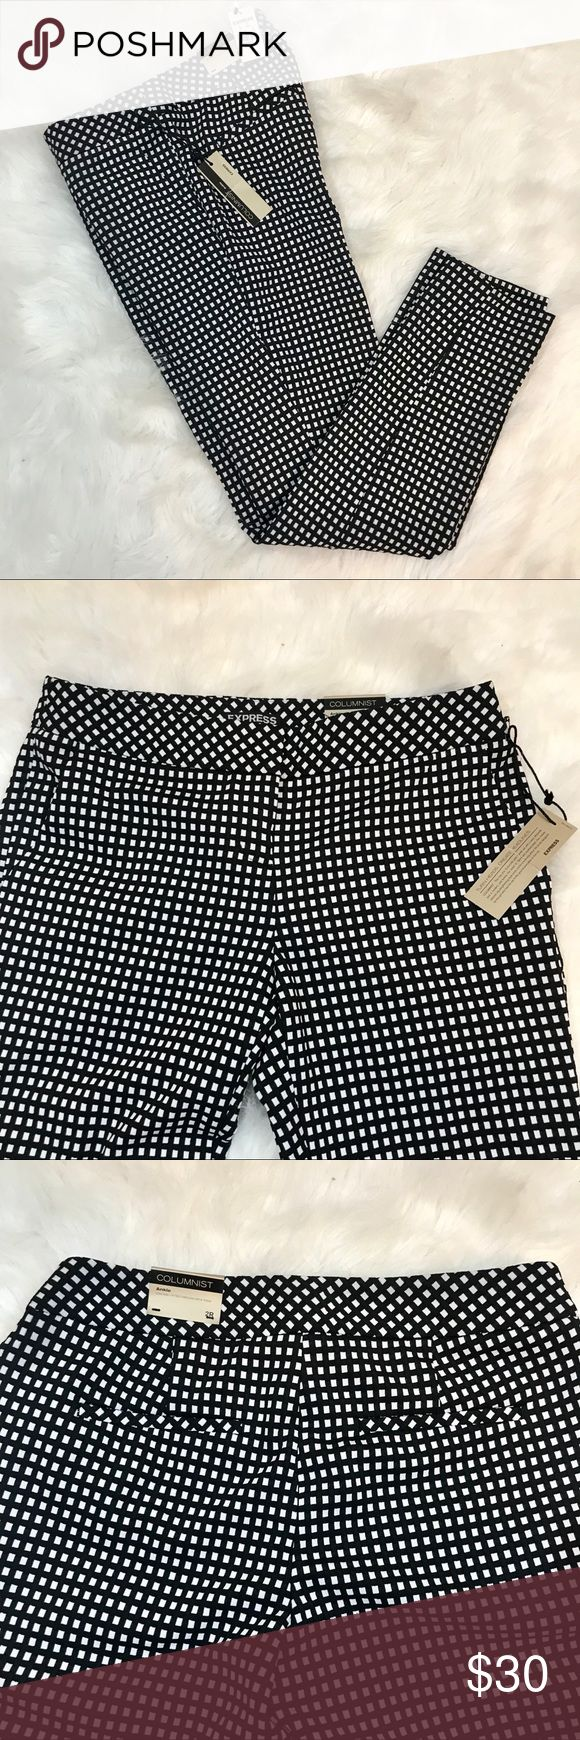 """Express Columnist Ankle Pants Size 2R New with tags! Absolutely no rips or stains! Black pants with small white squares.  Flat measurements  🔹Waist 15 1/2"""" 🔹Rise 8 1/2"""" 🔹Inseam 28"""" Express Pants Ankle & Cropped"""